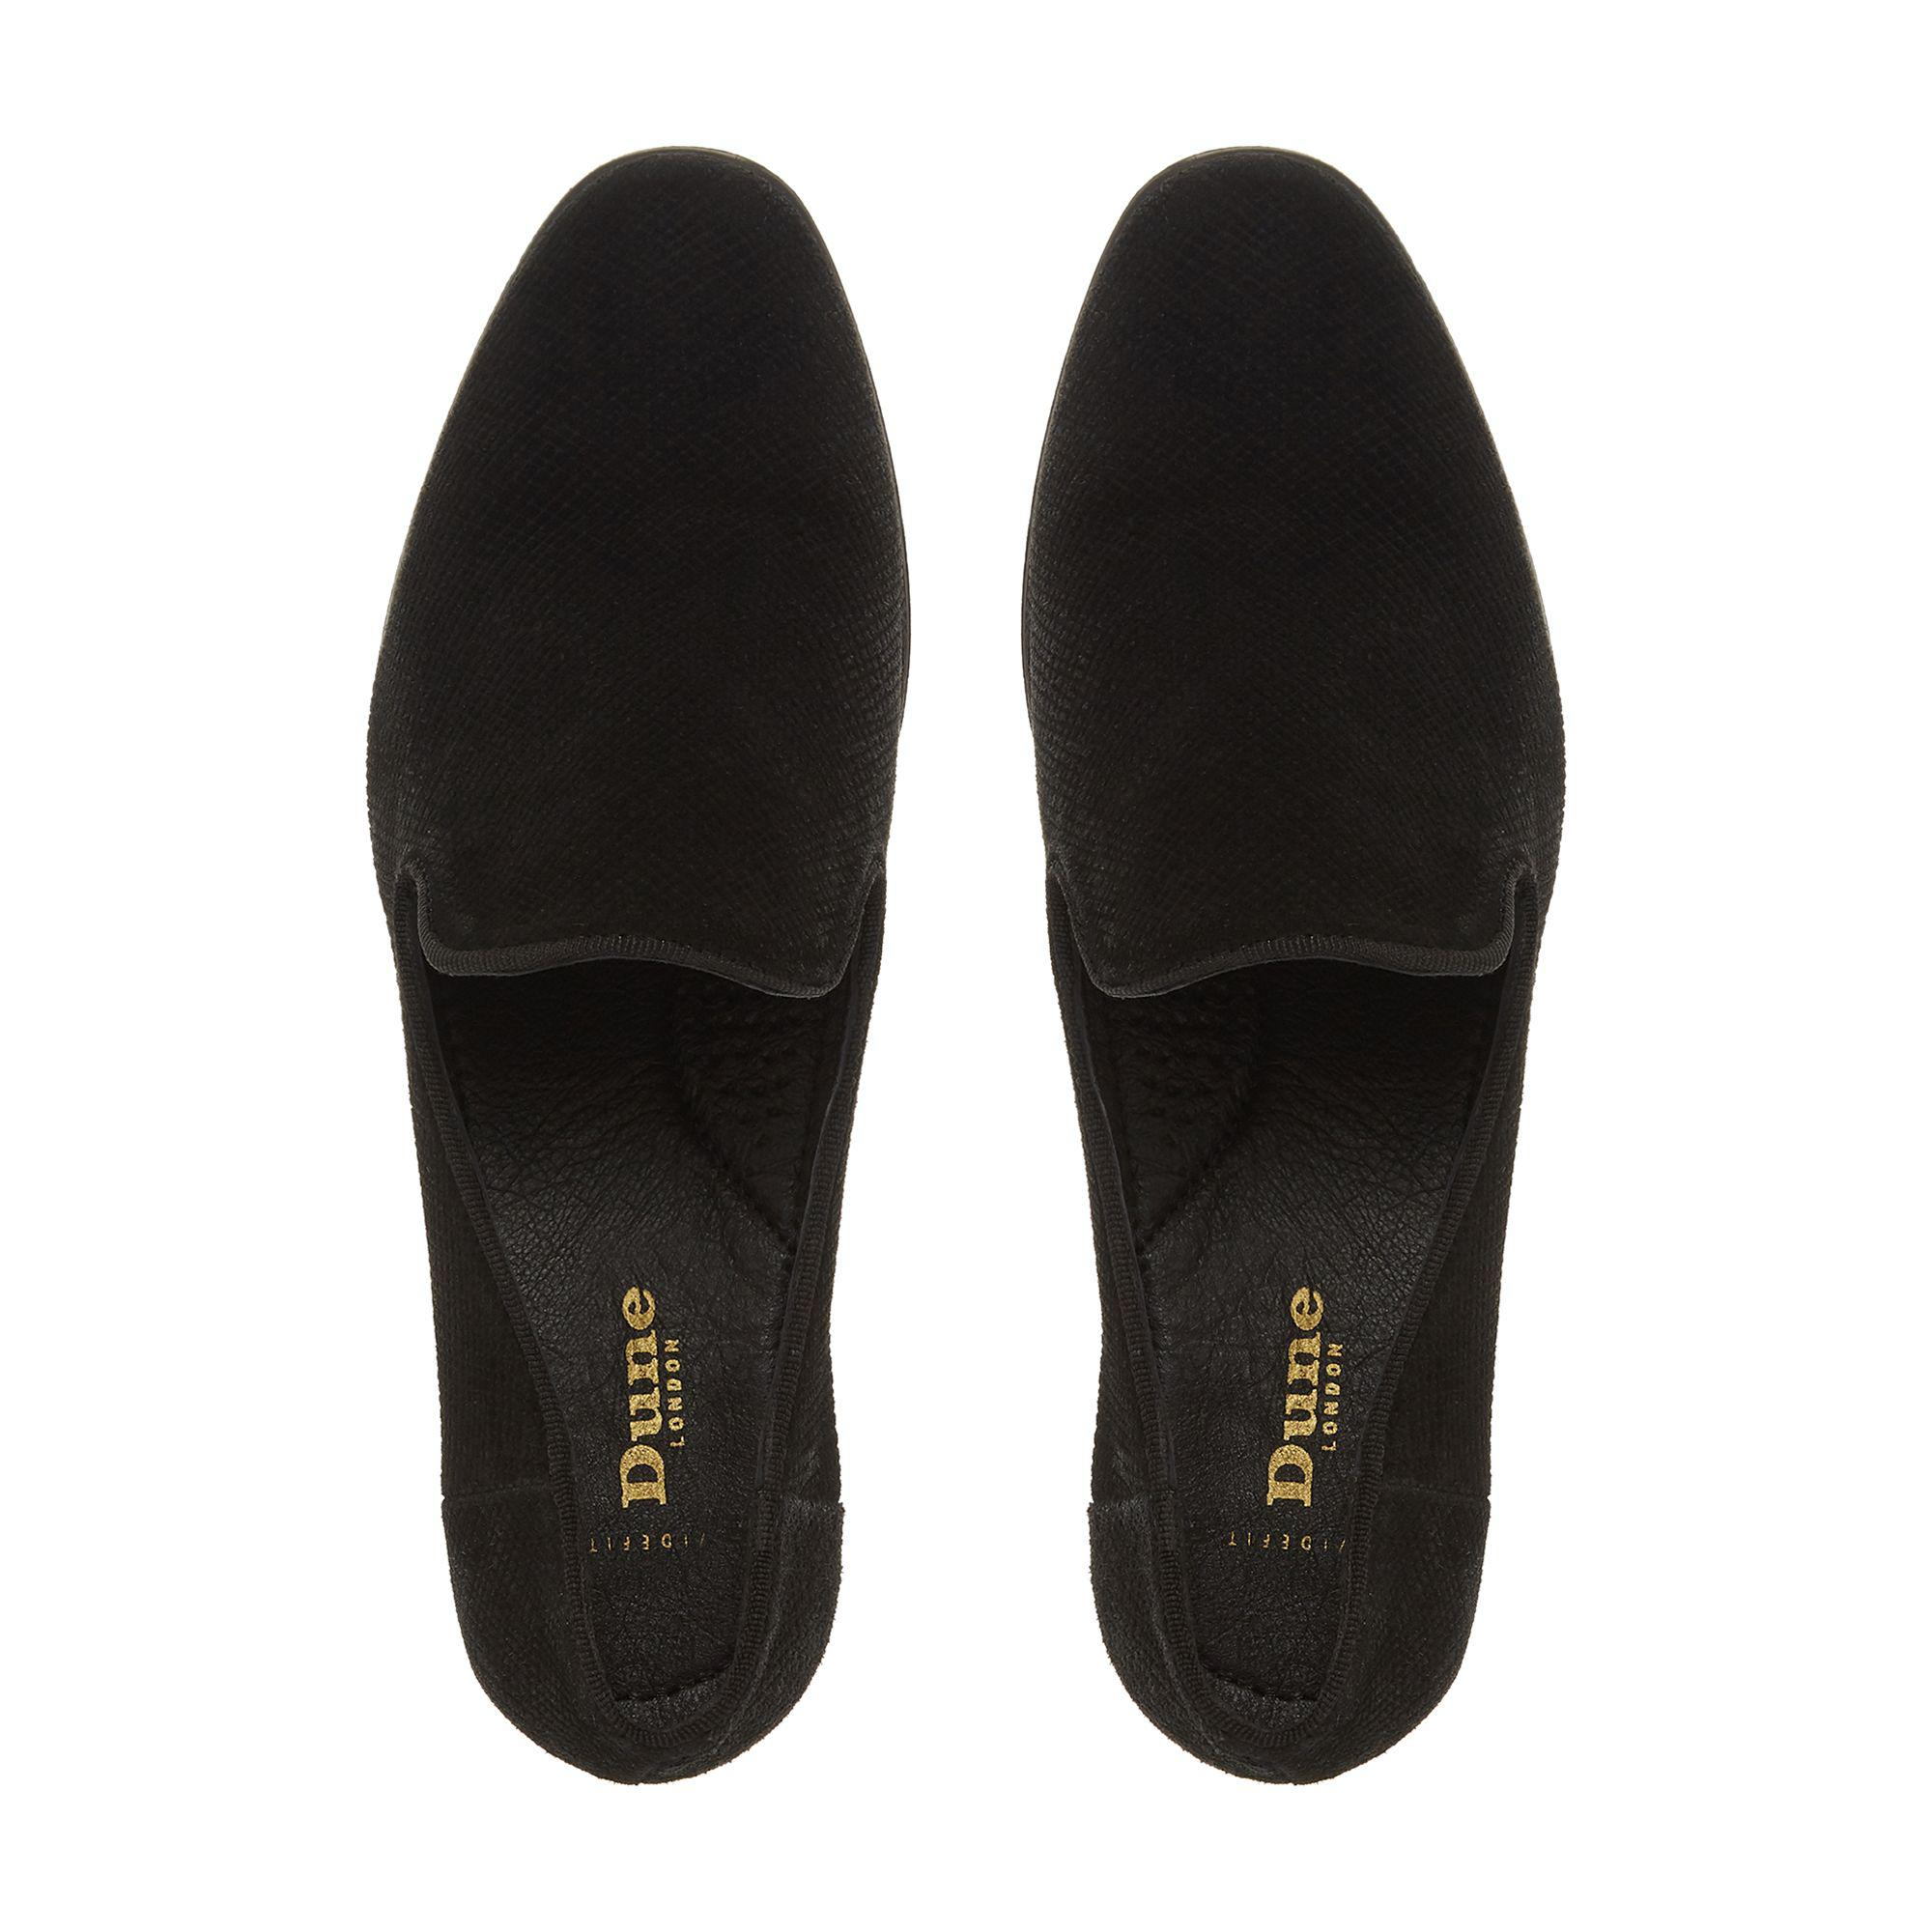 9255a7df45f Dune Black Suede  wf Galiard  Wide Fit Loafers in Black - Save 76 ...